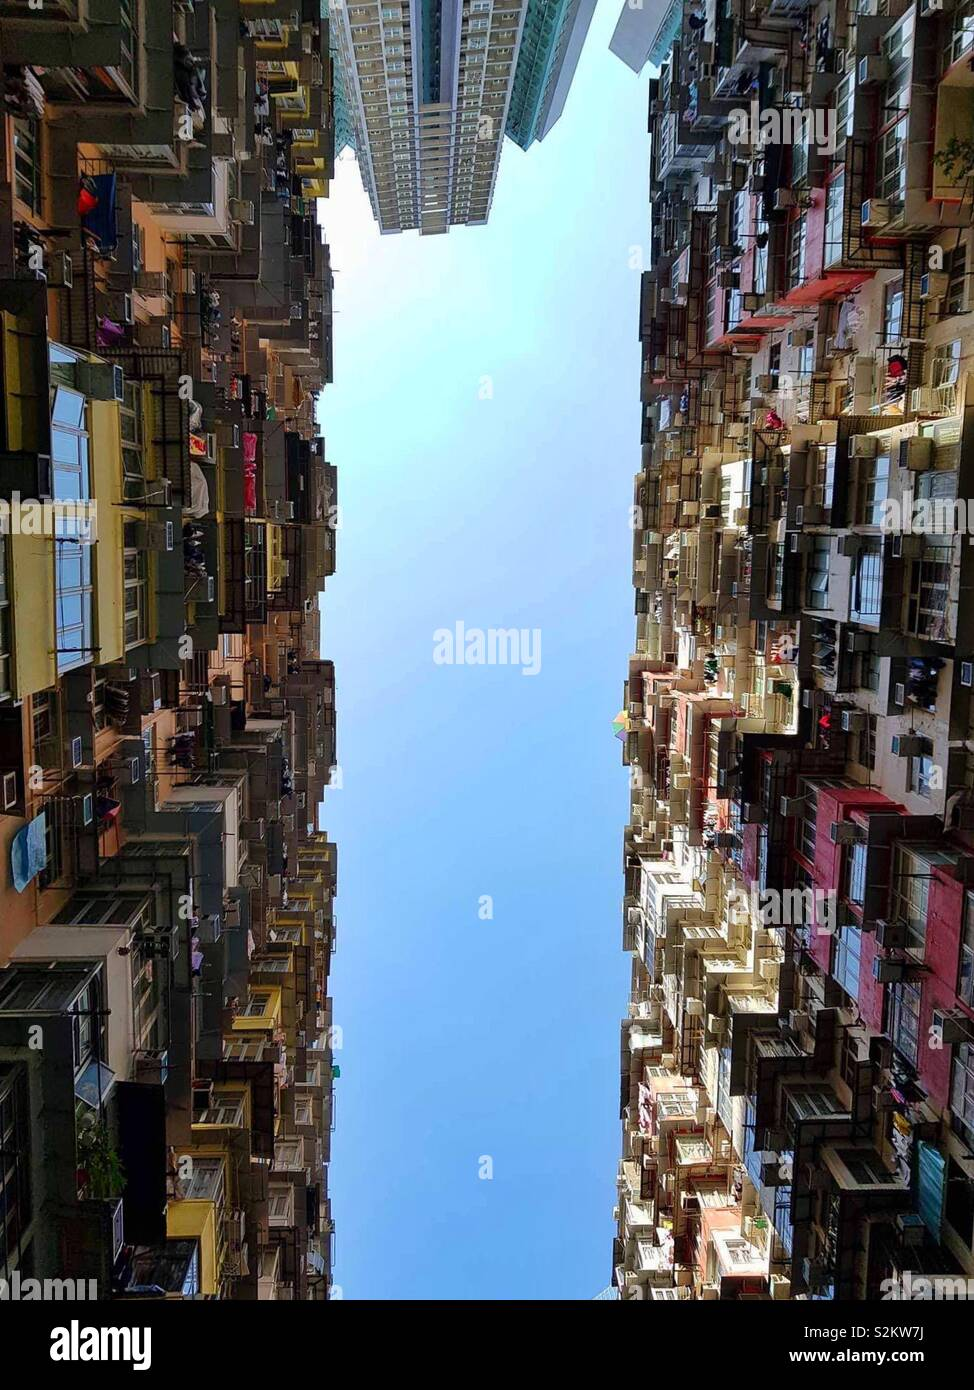 Hong Kong, Mansion Towers, Look up, Tall Building Stock Photo